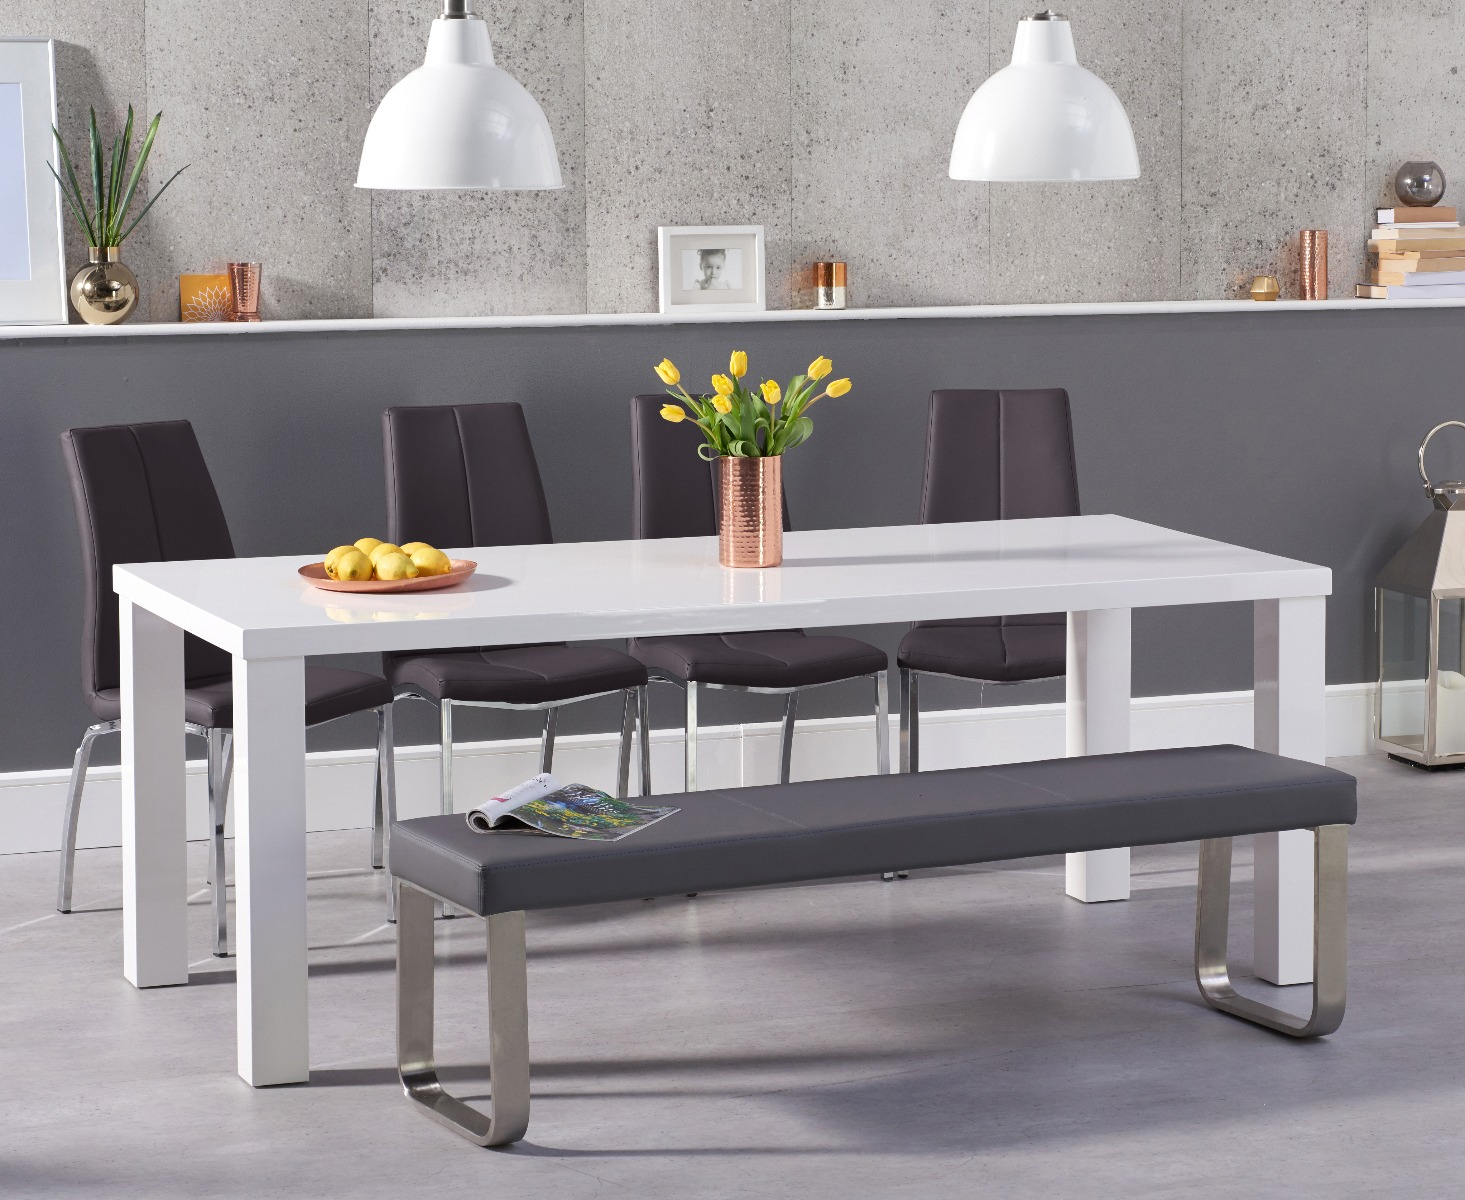 Atlanta 180cm White High Gloss Dining Table With Cavello Chairs And Grey Bench